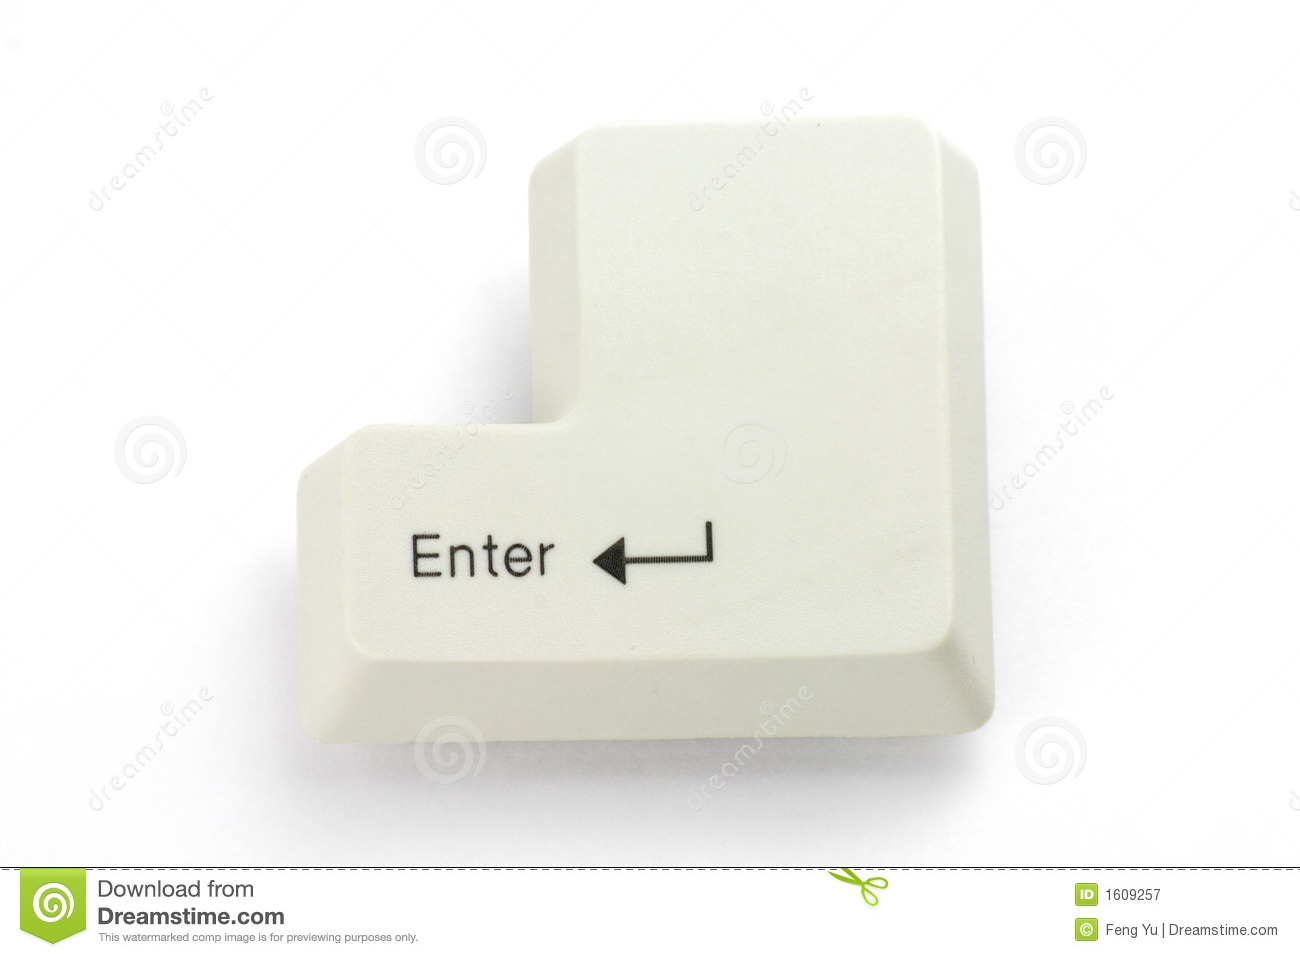 Enter Key Royalty Free Stock Photography - Image: 1609257